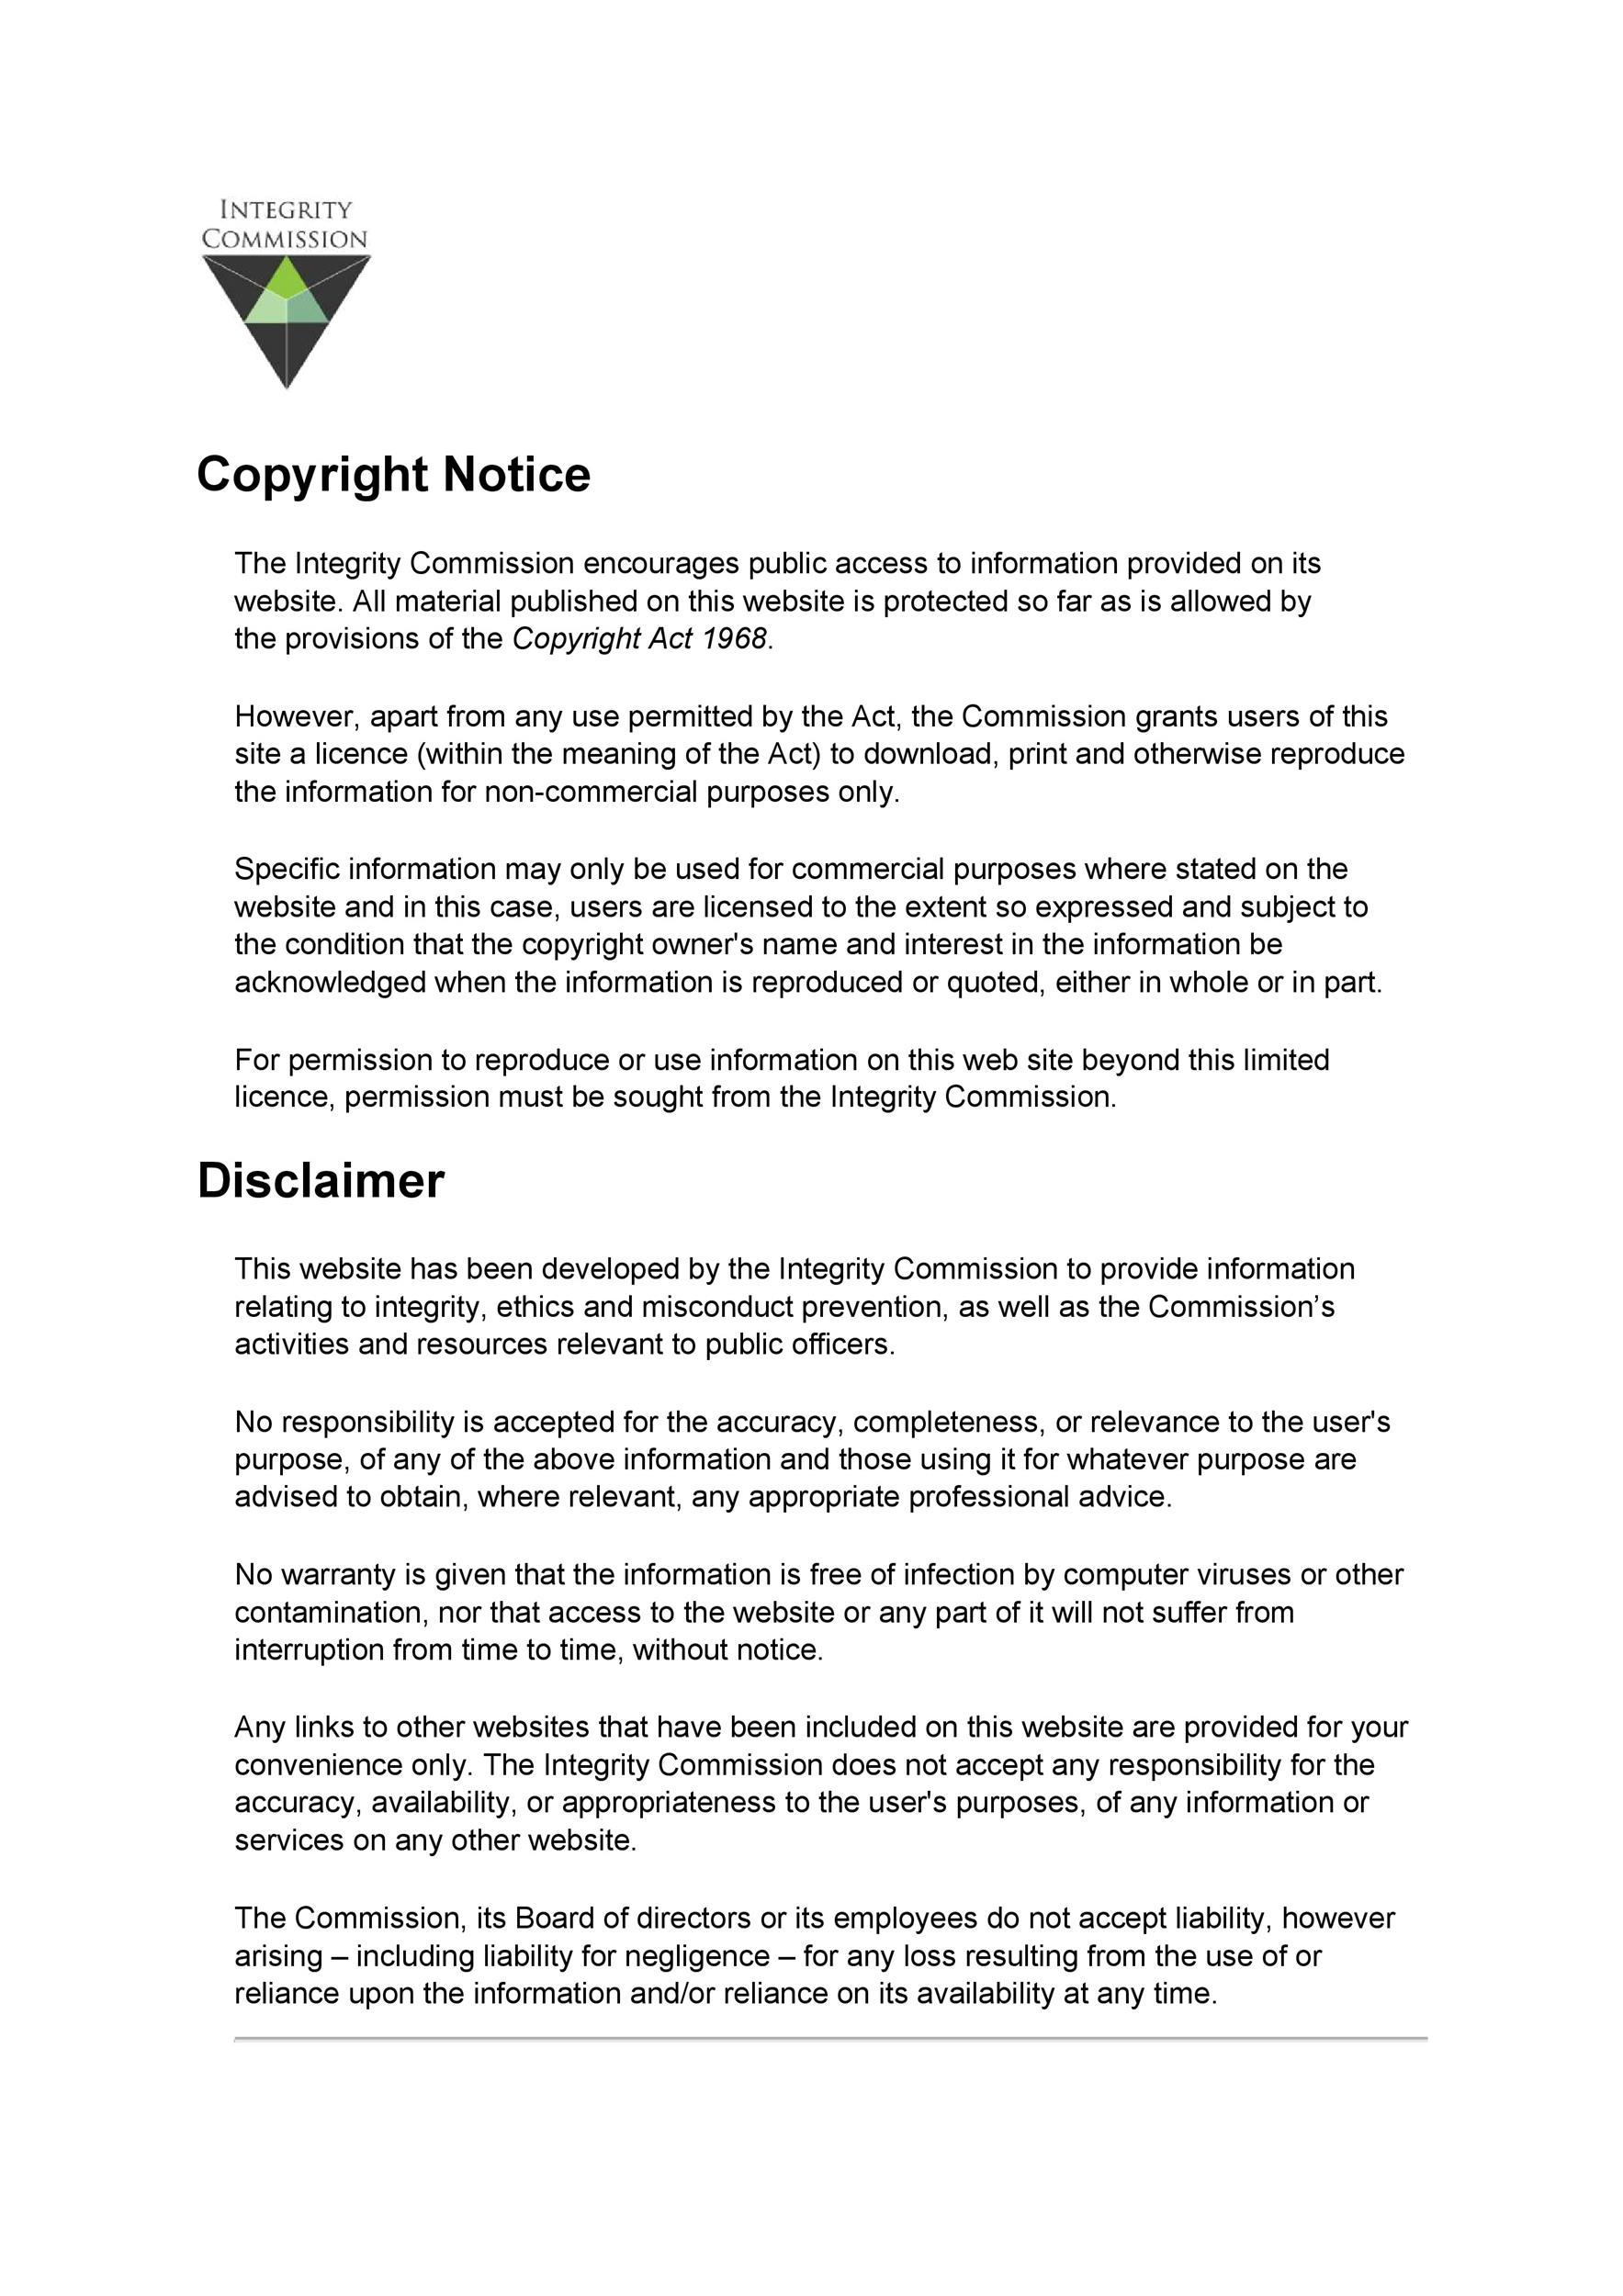 Free copyright notice example 31